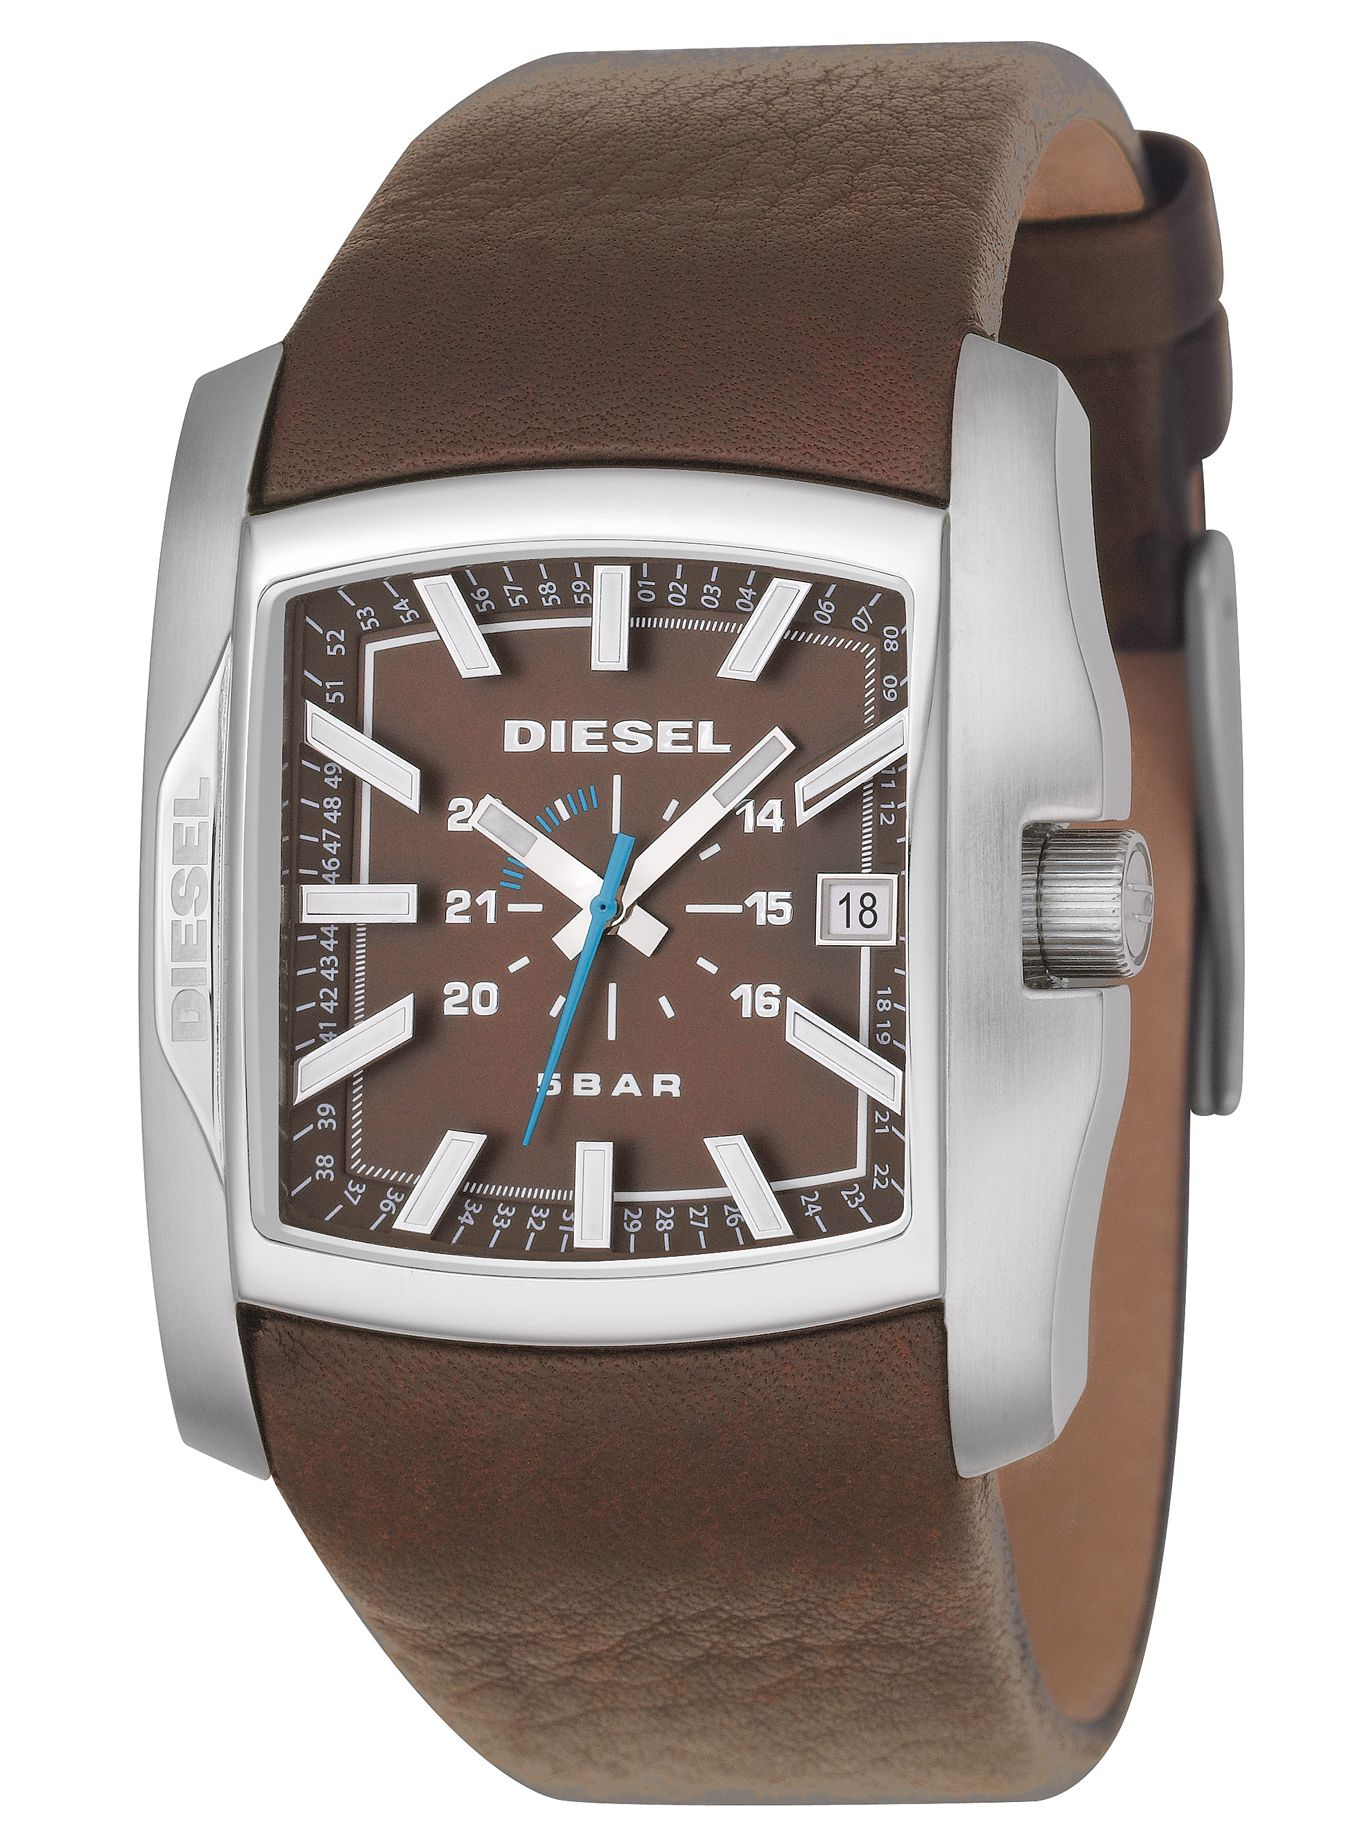 Mens Diesel DZ1179 Contemporary square case watch : 1741102143793912 from rosebys.co.uk size 1371 x 1829 jpeg 309kB